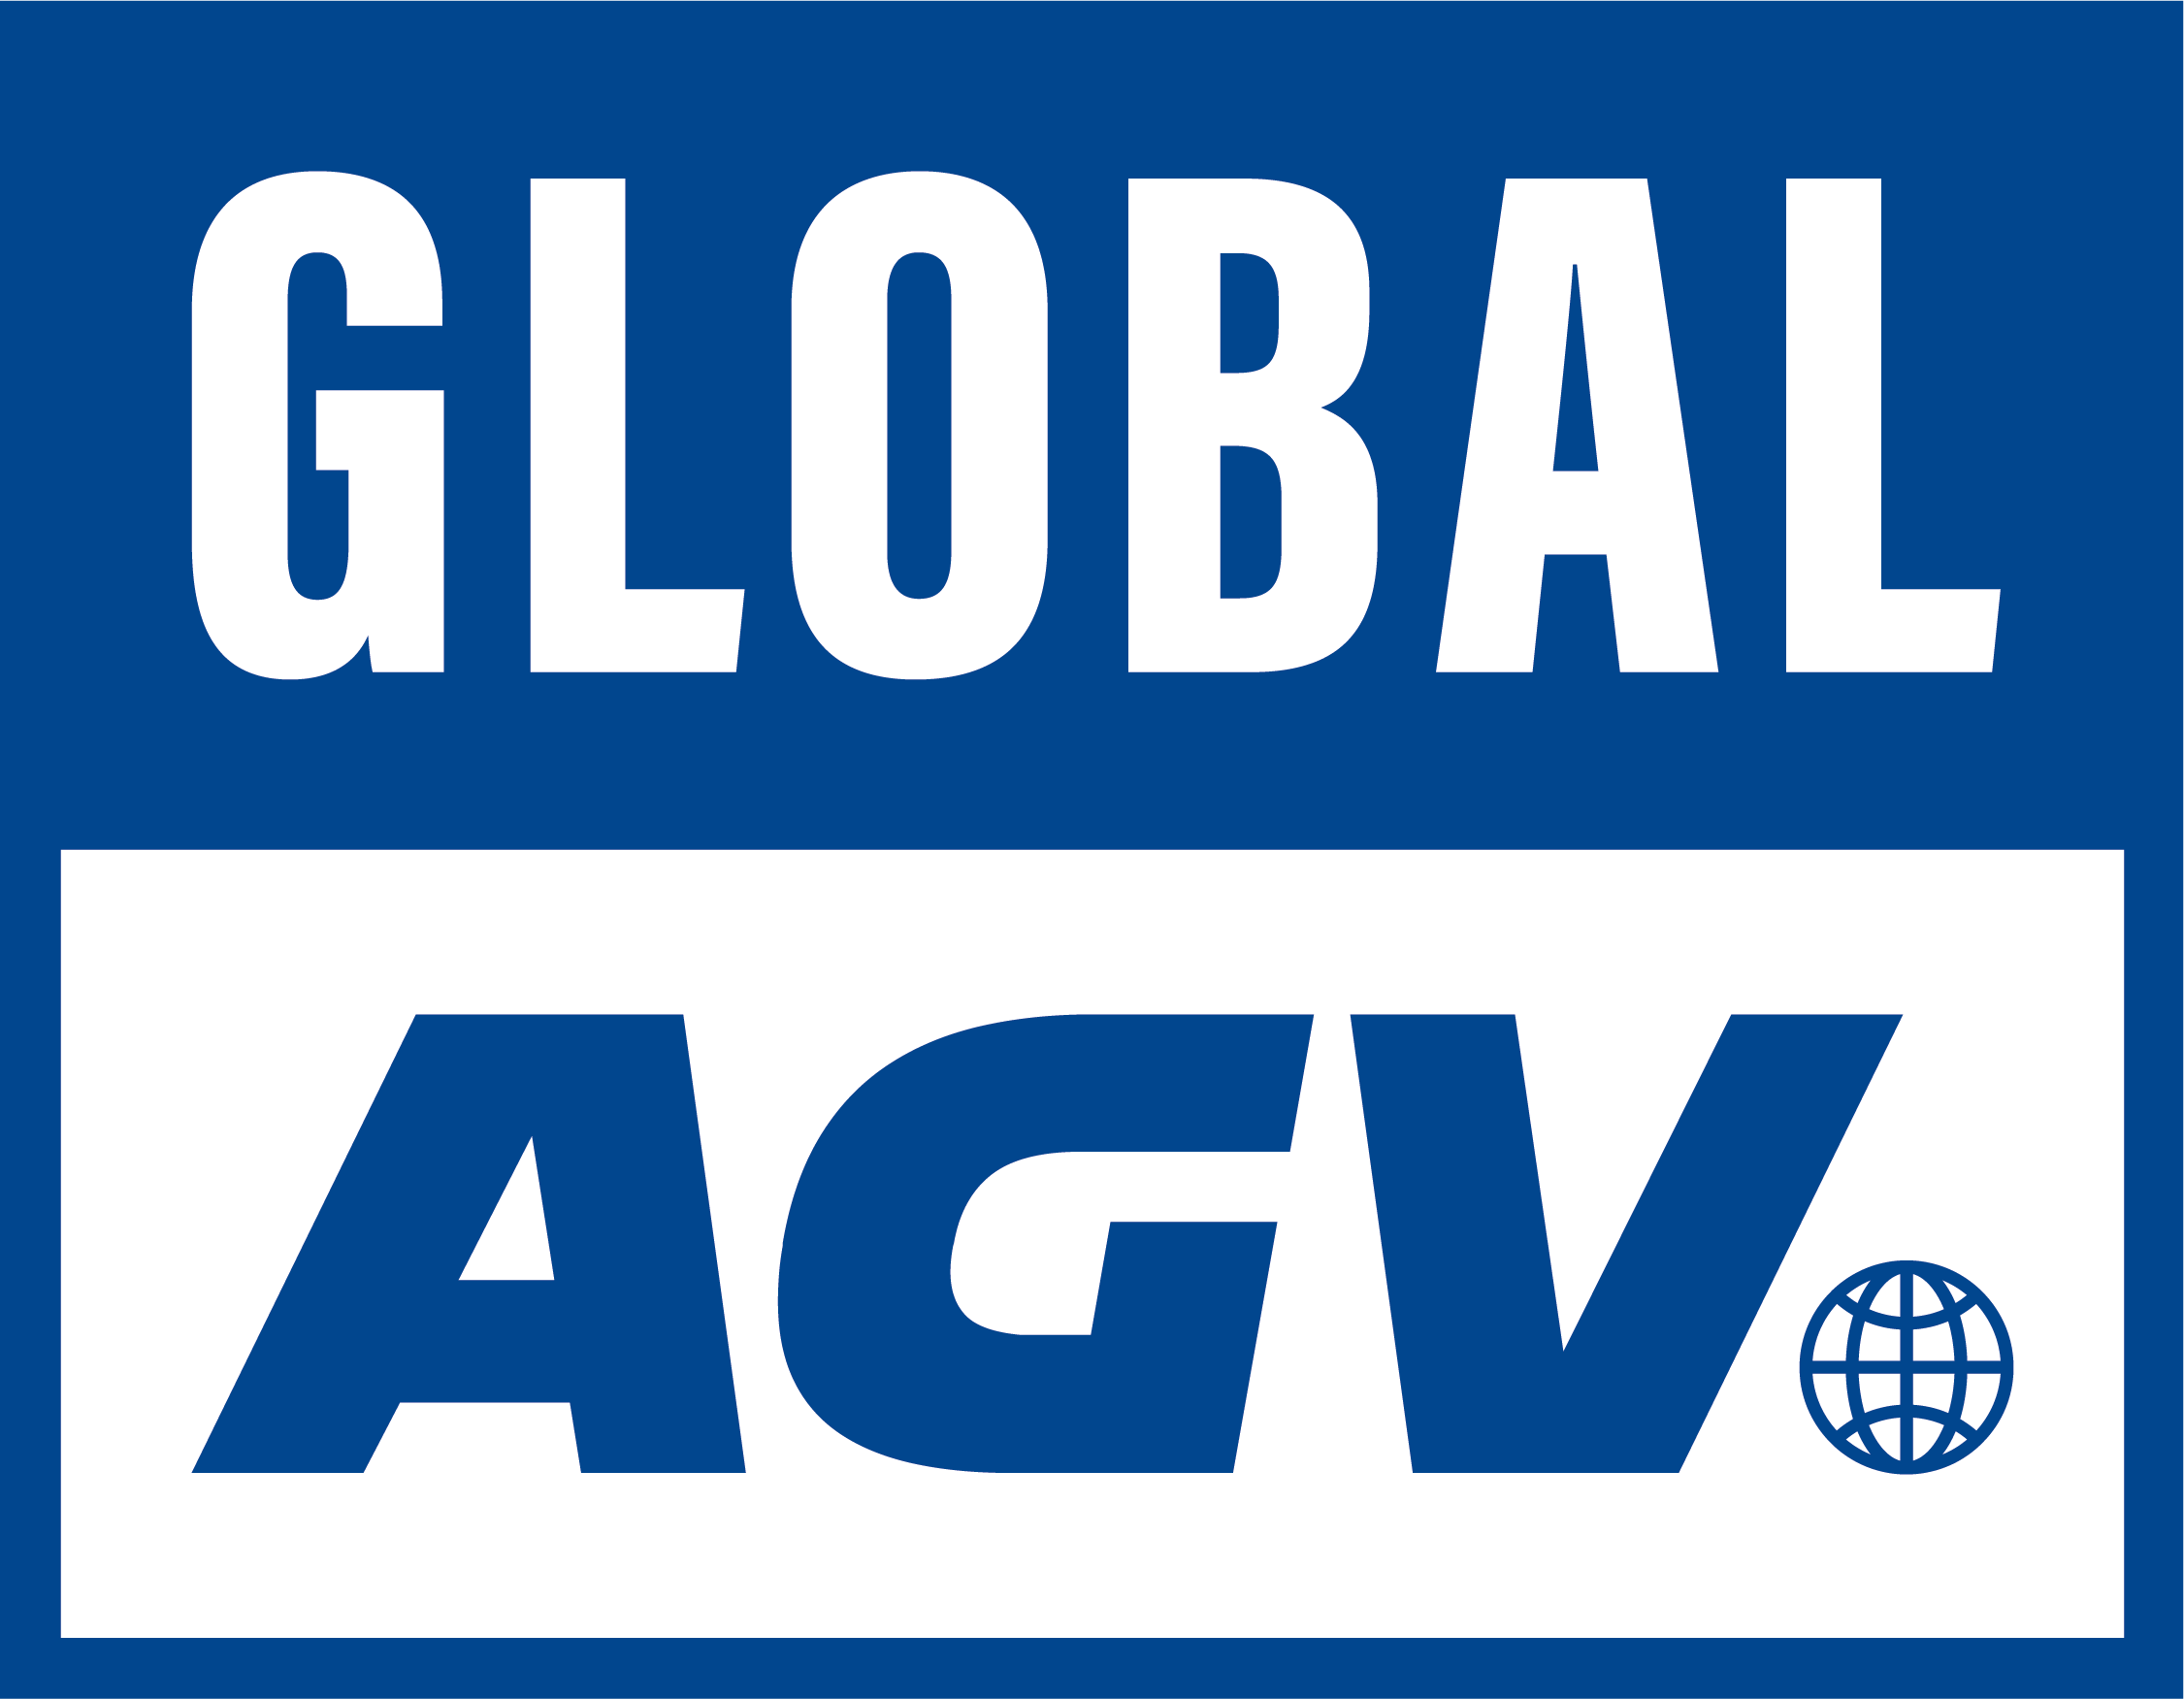 Autonomous Forklifts Brings Automation as a Return-to-Work Strategy During the Pandemic According to Global AGV